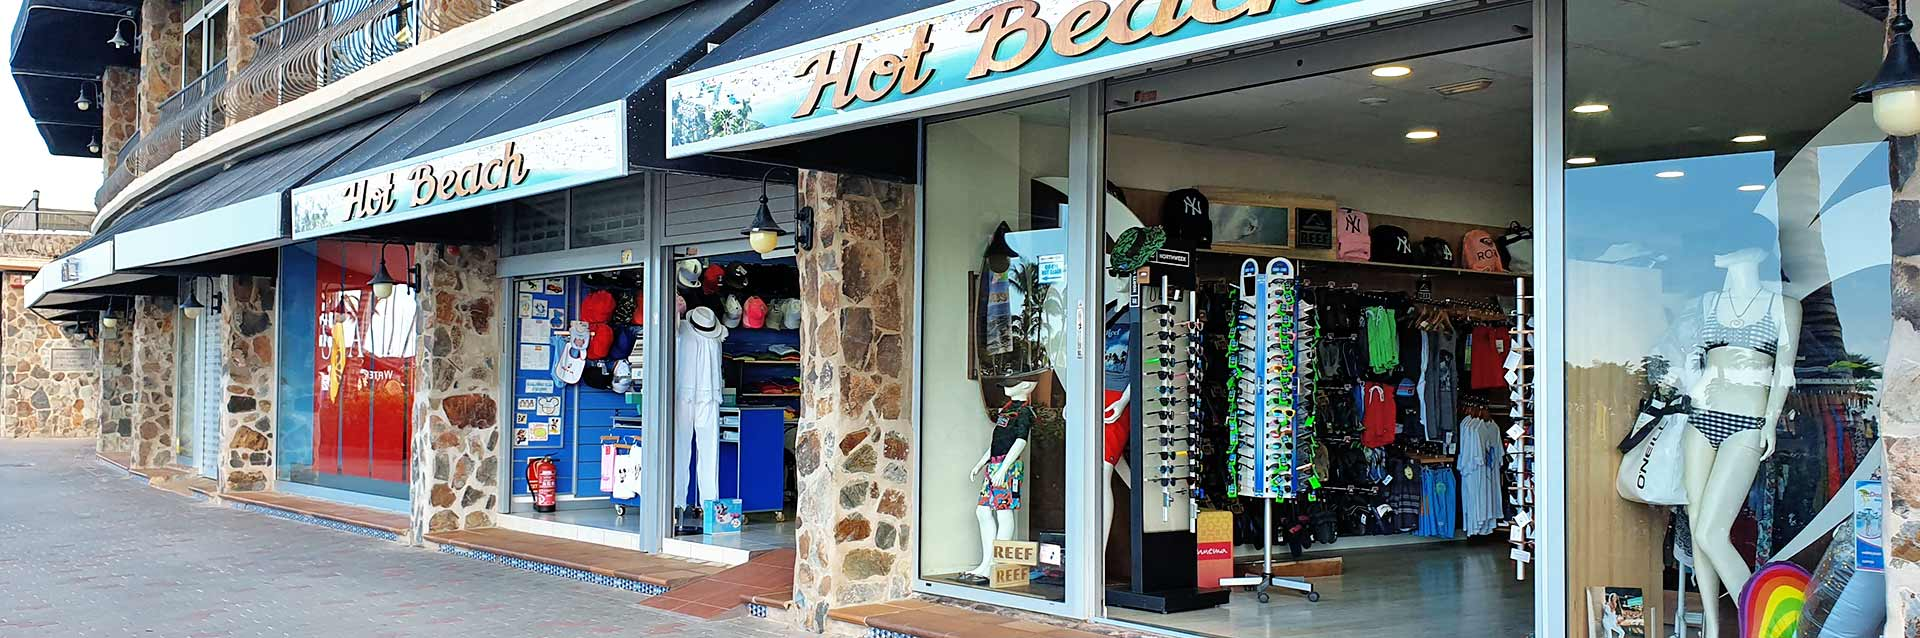 "Anfi del Mar Beach Boutique ""Hot Beach"""